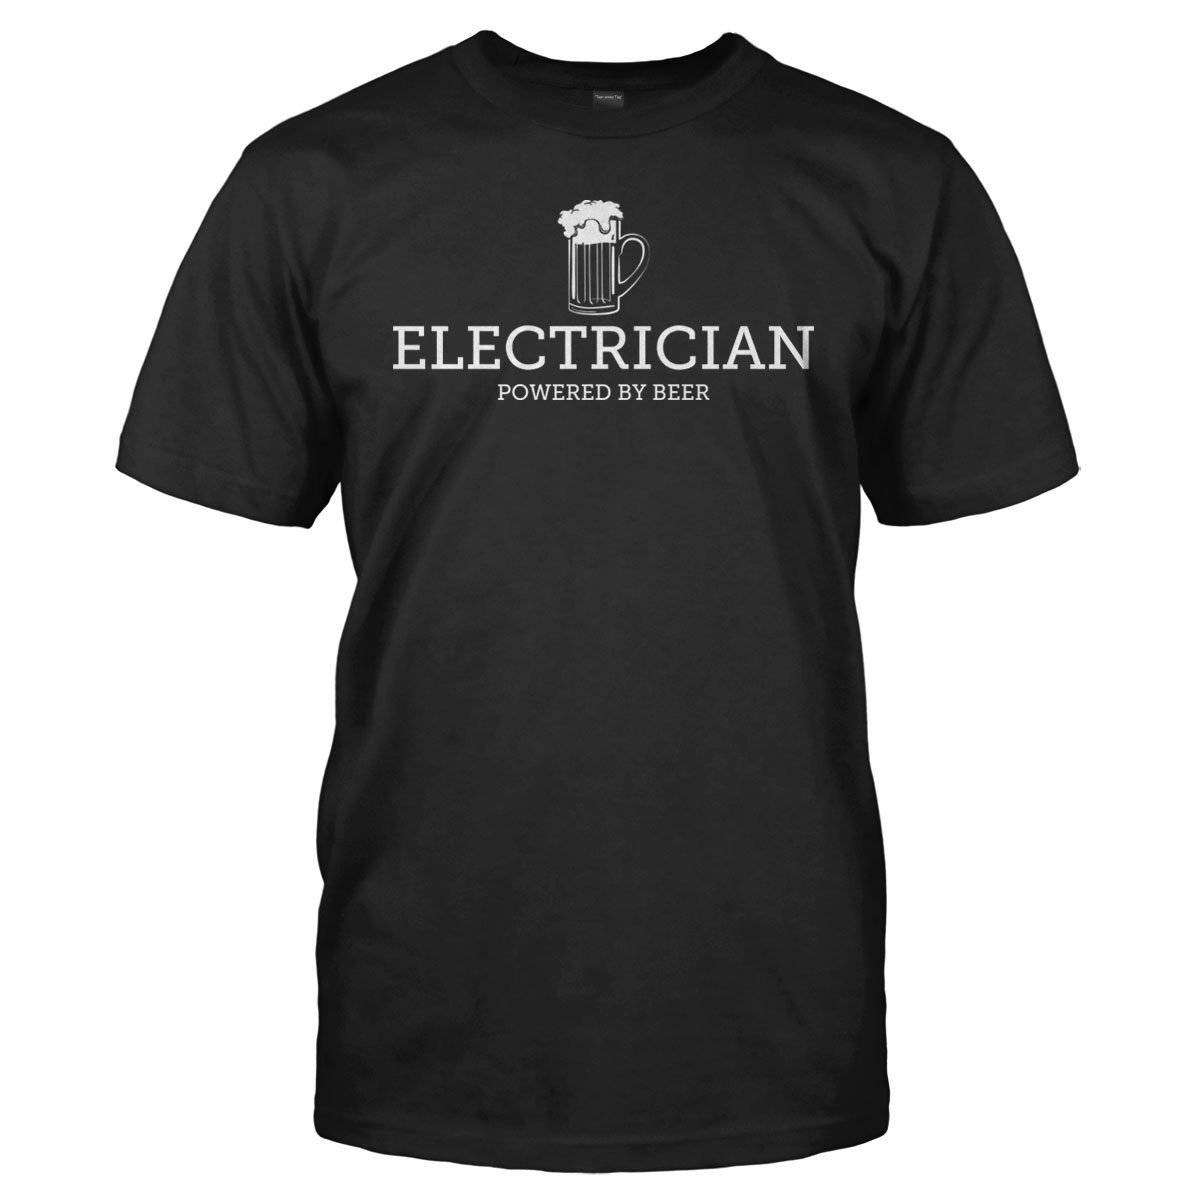 Electrician Powered by Beer - T Shirt